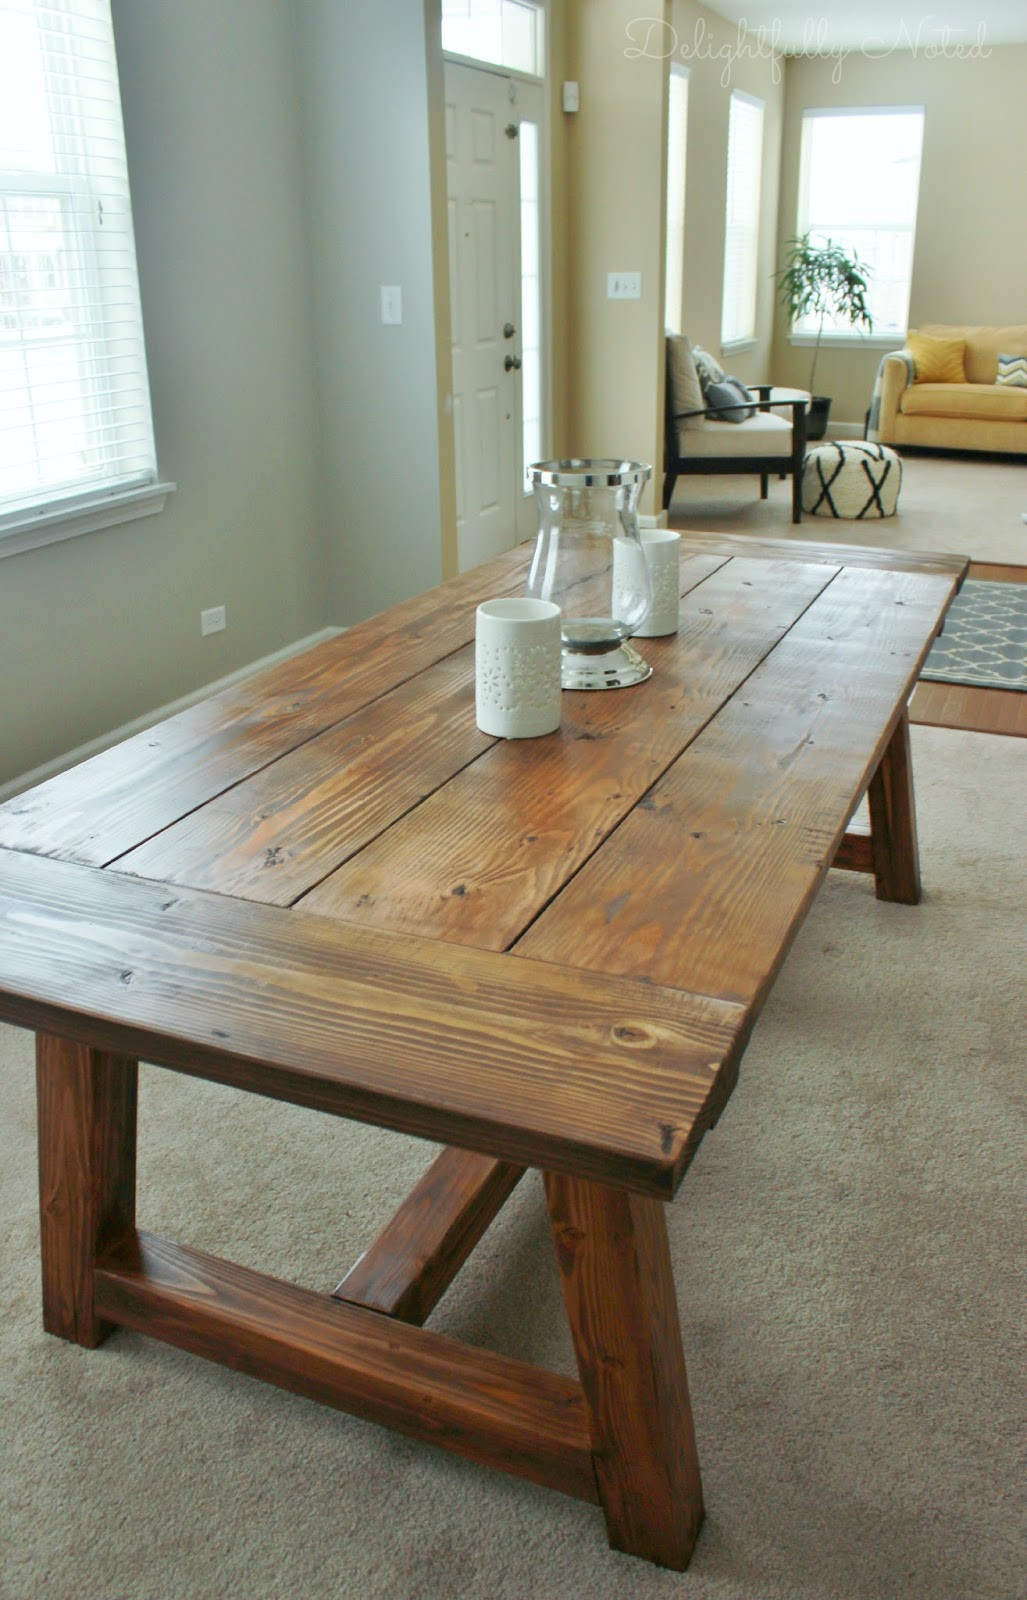 Best ideas about DIY Farmhouse Kitchen Table . Save or Pin Holy Cannoli We Built a Farmhouse Dining Room Table Now.